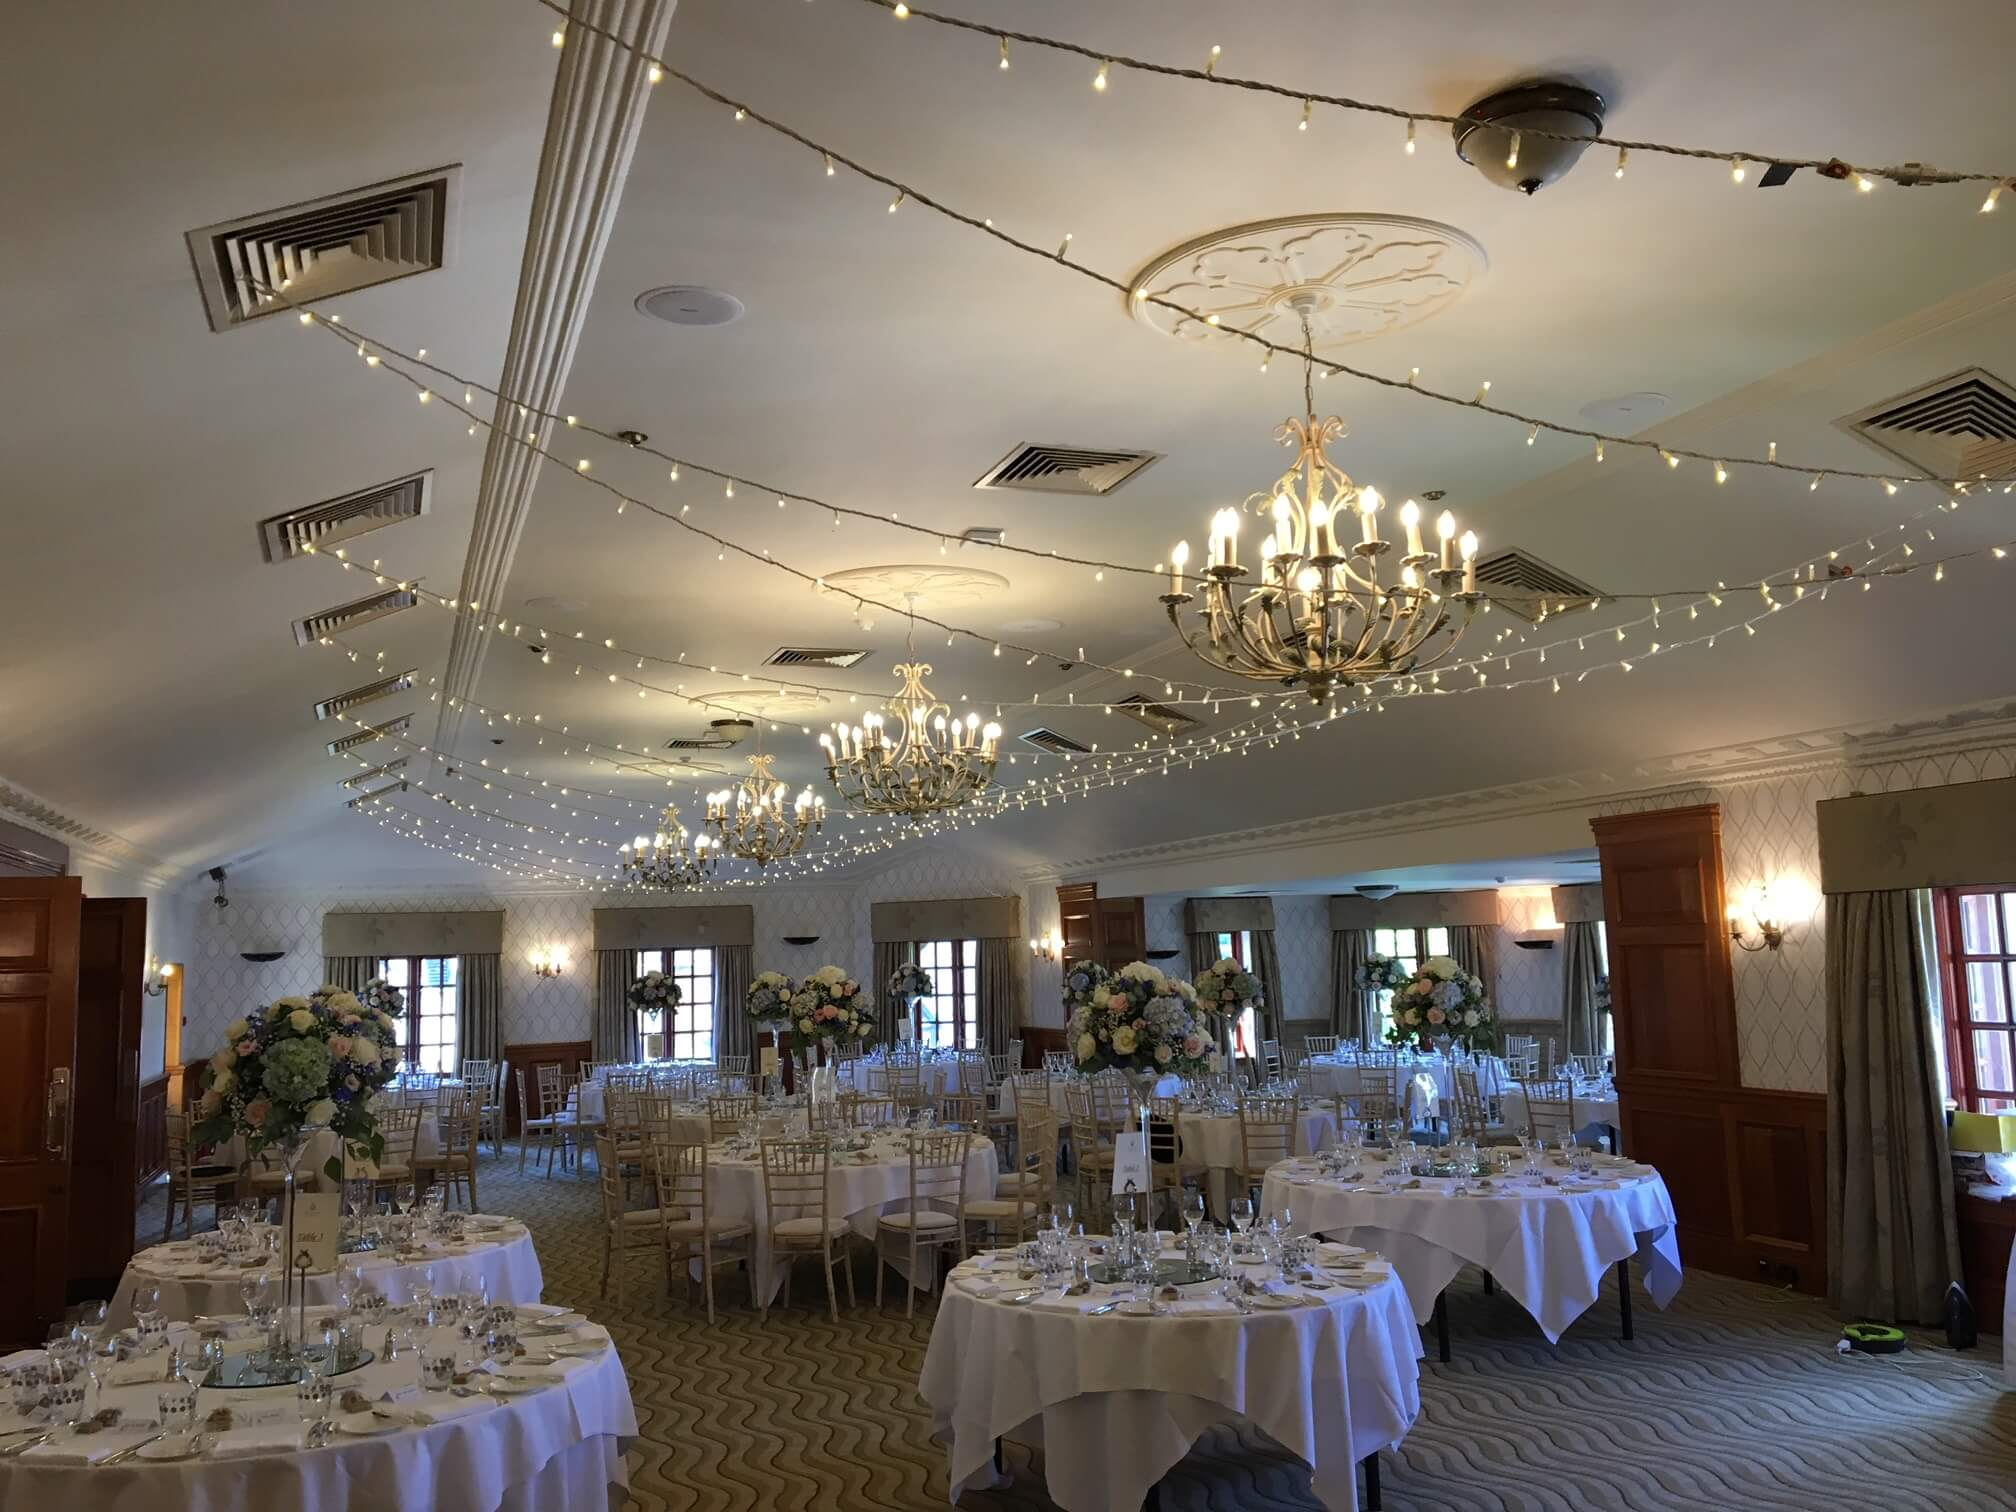 Penny Hill Spa Fairy Light Canopy - Fusion Sound & Light